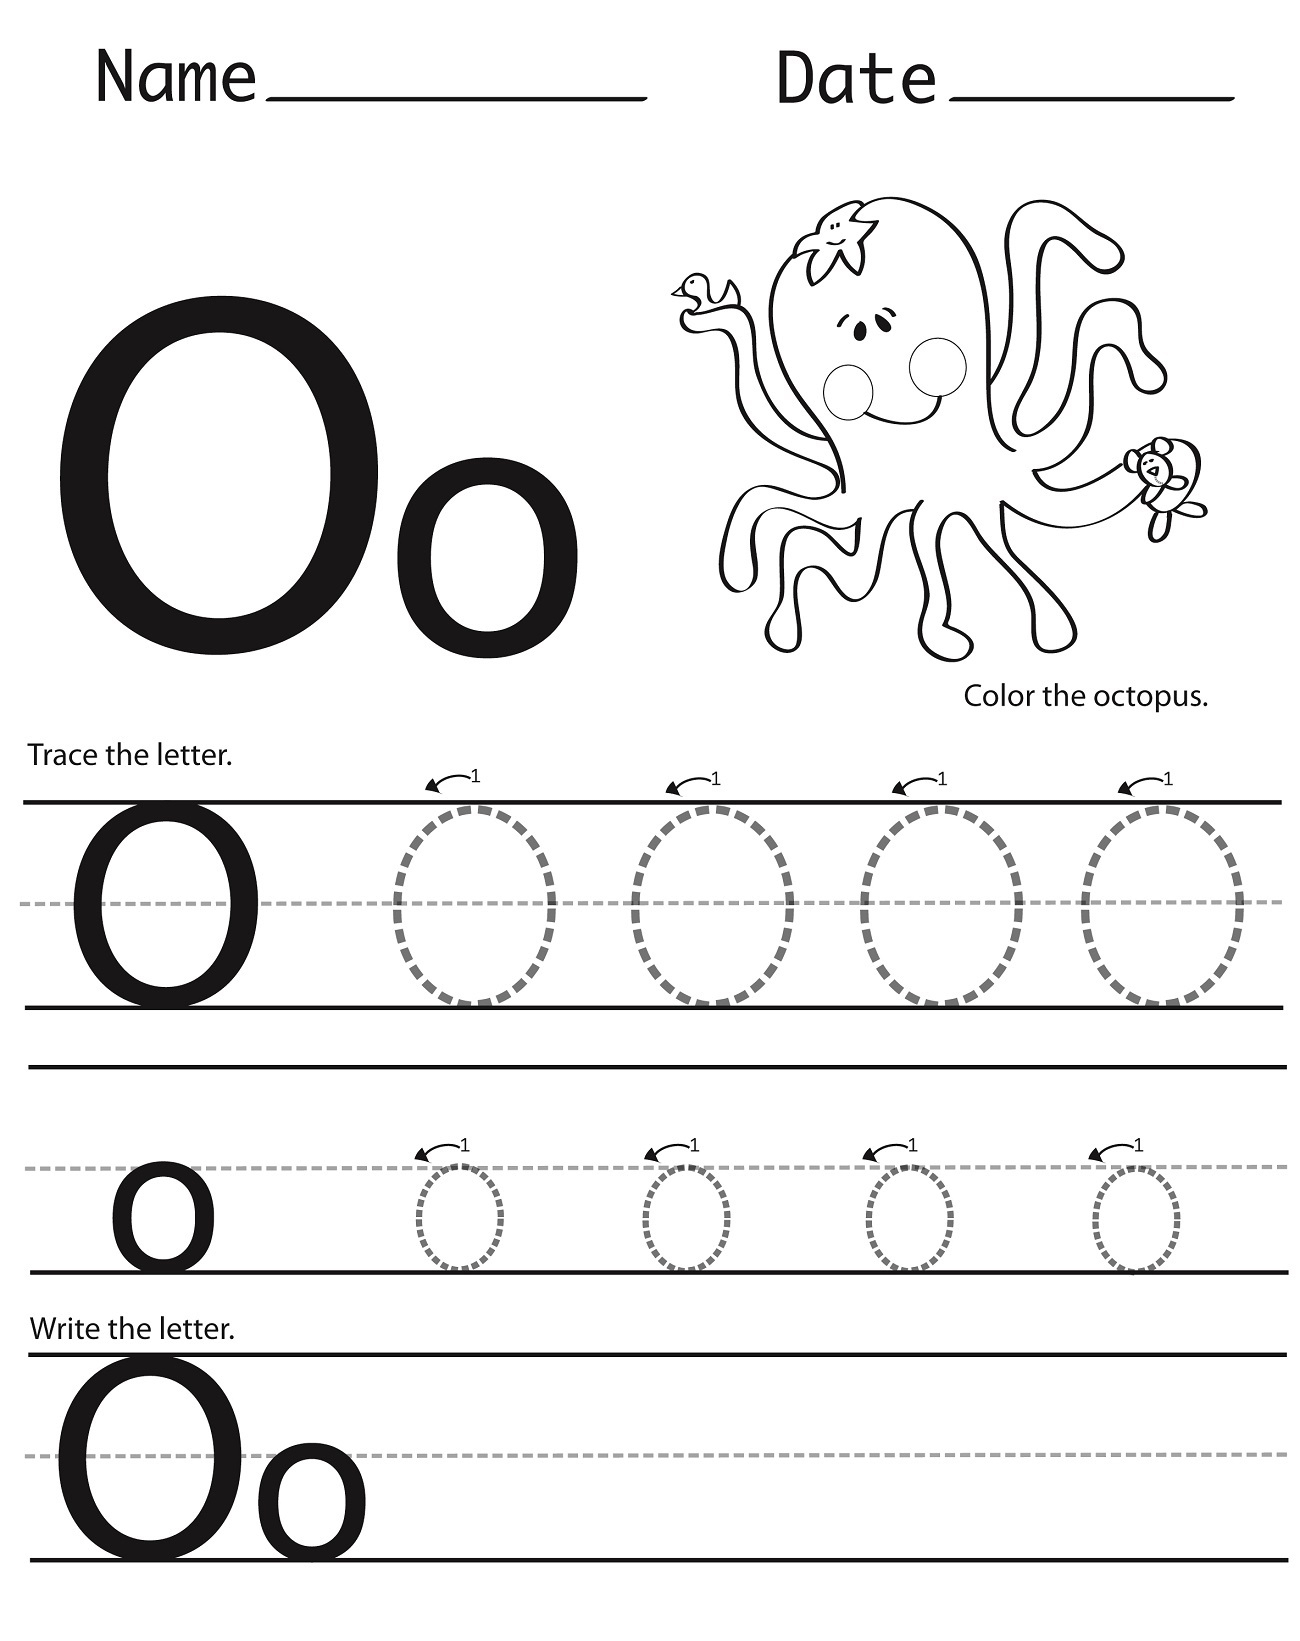 Tracing Letter O Worksheets | Activity Shelter throughout Letter O Tracing Page